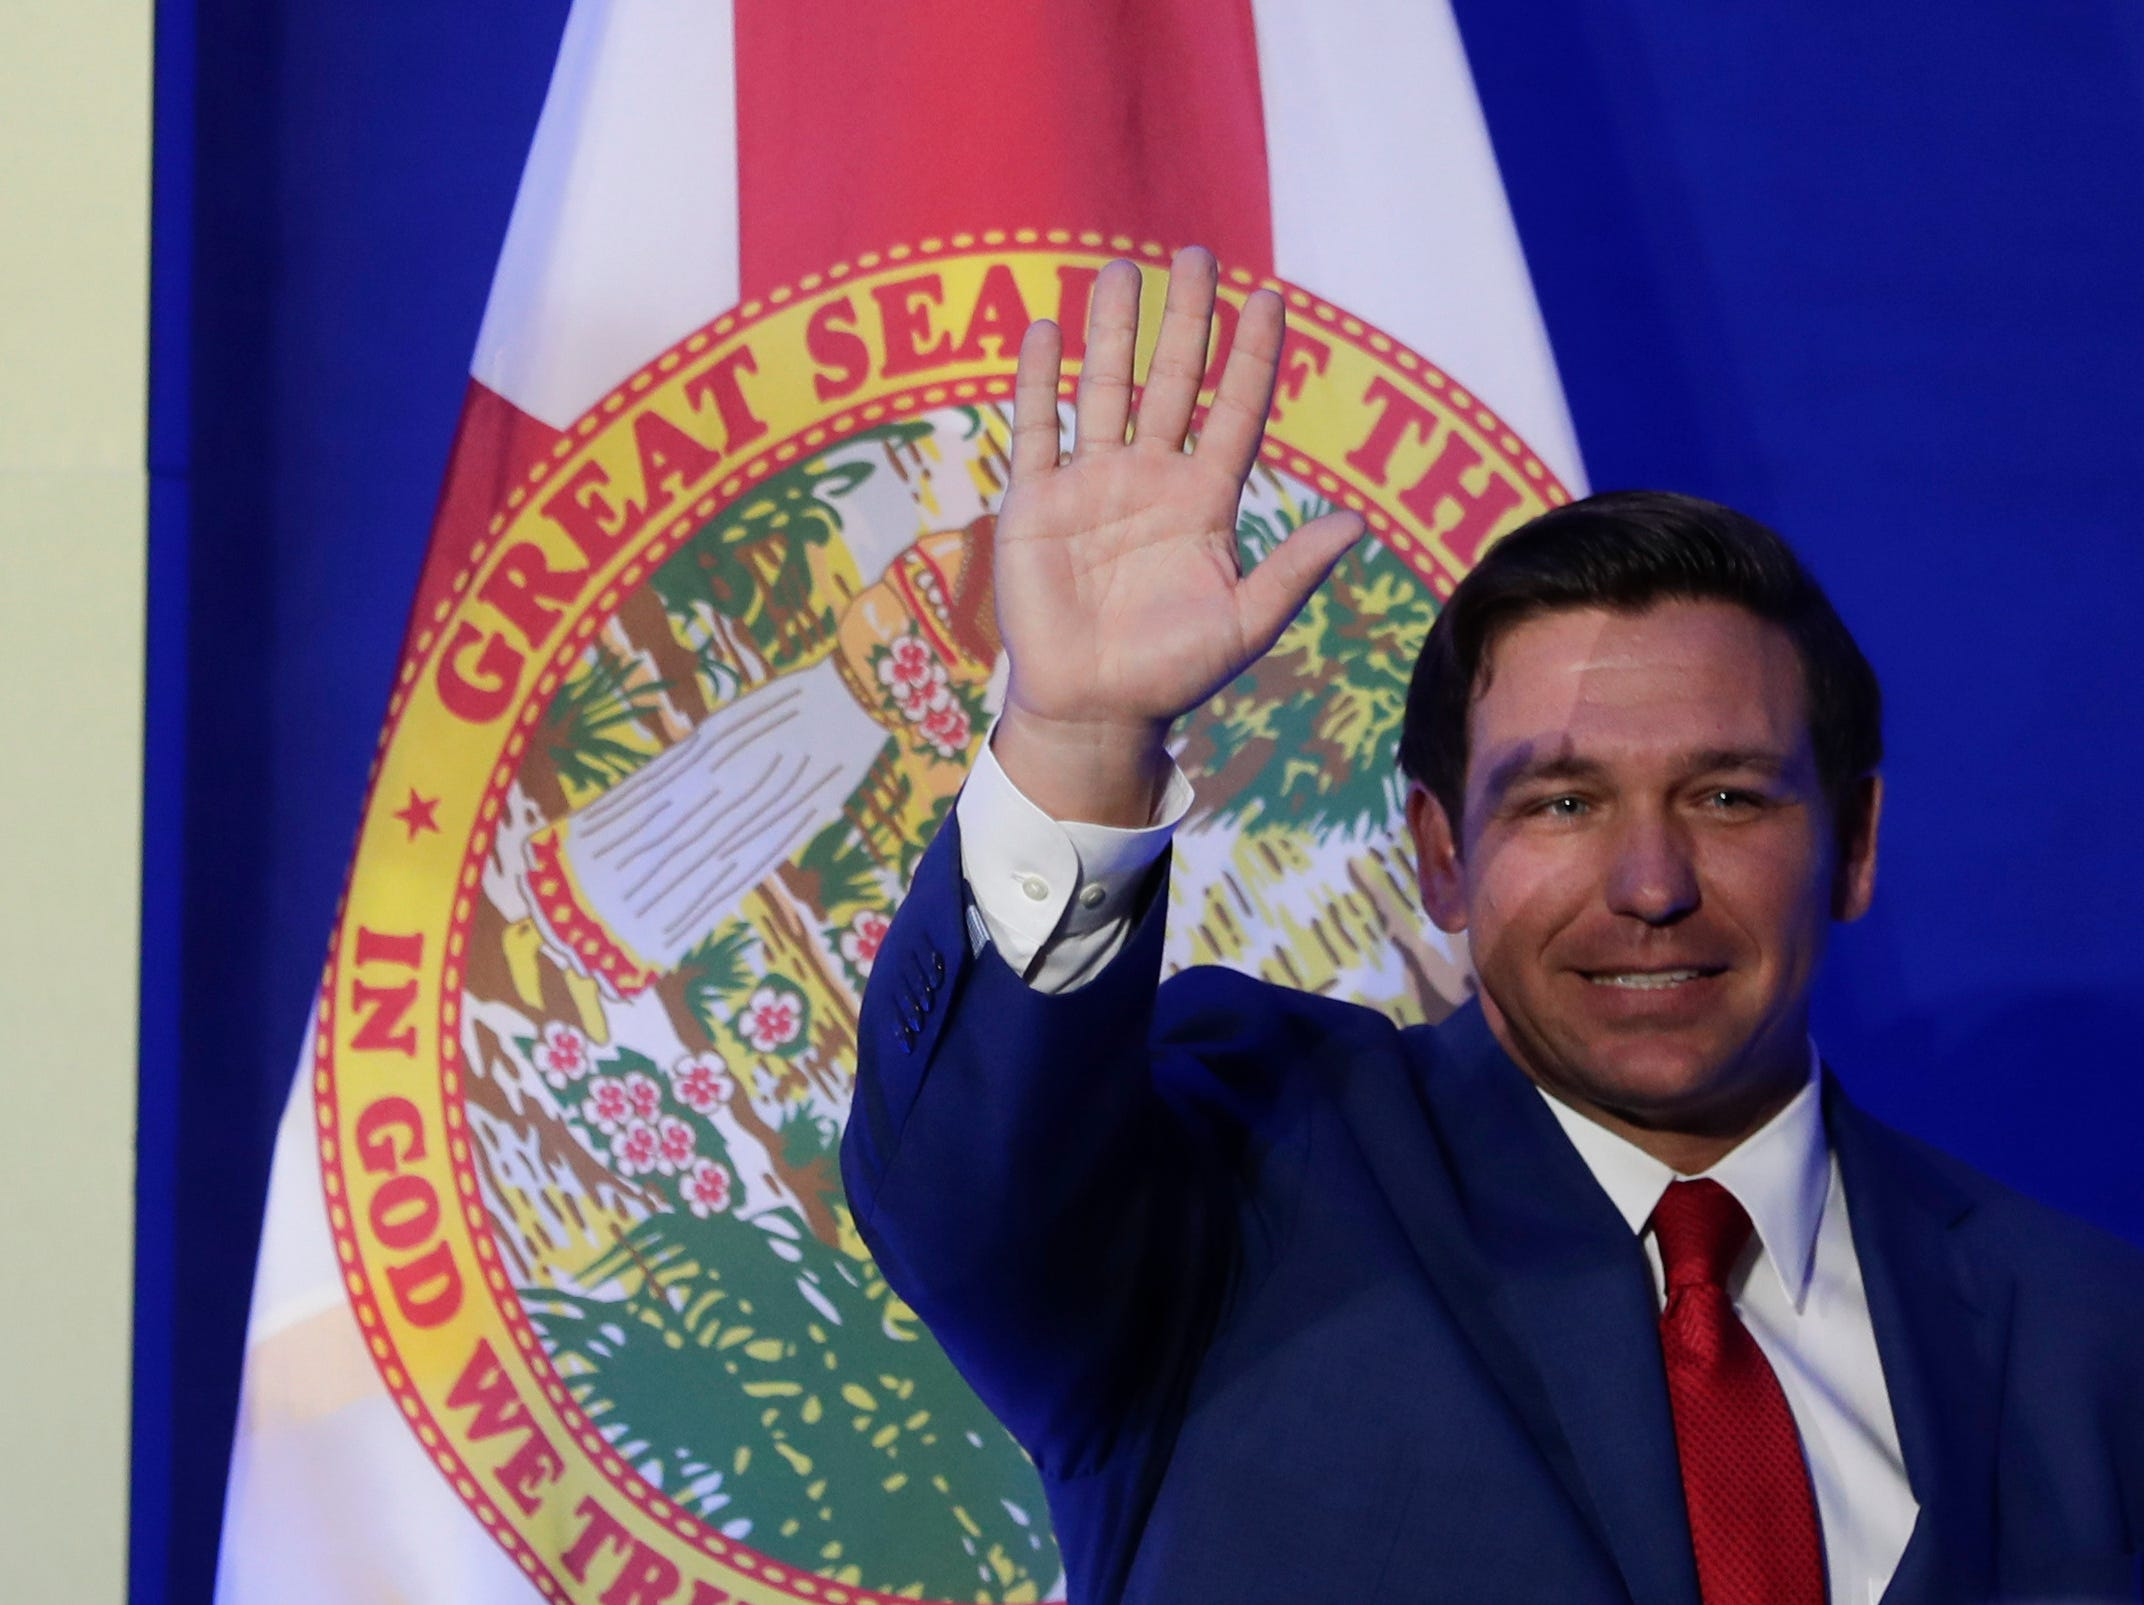 Gov. Ron DeSantis leaves the stage after speaking during the Bold Vision for a Bright Future: Thought Leaders Luncheon in the University Center Club at Florida State University Monday, Jan. 7, 2019.